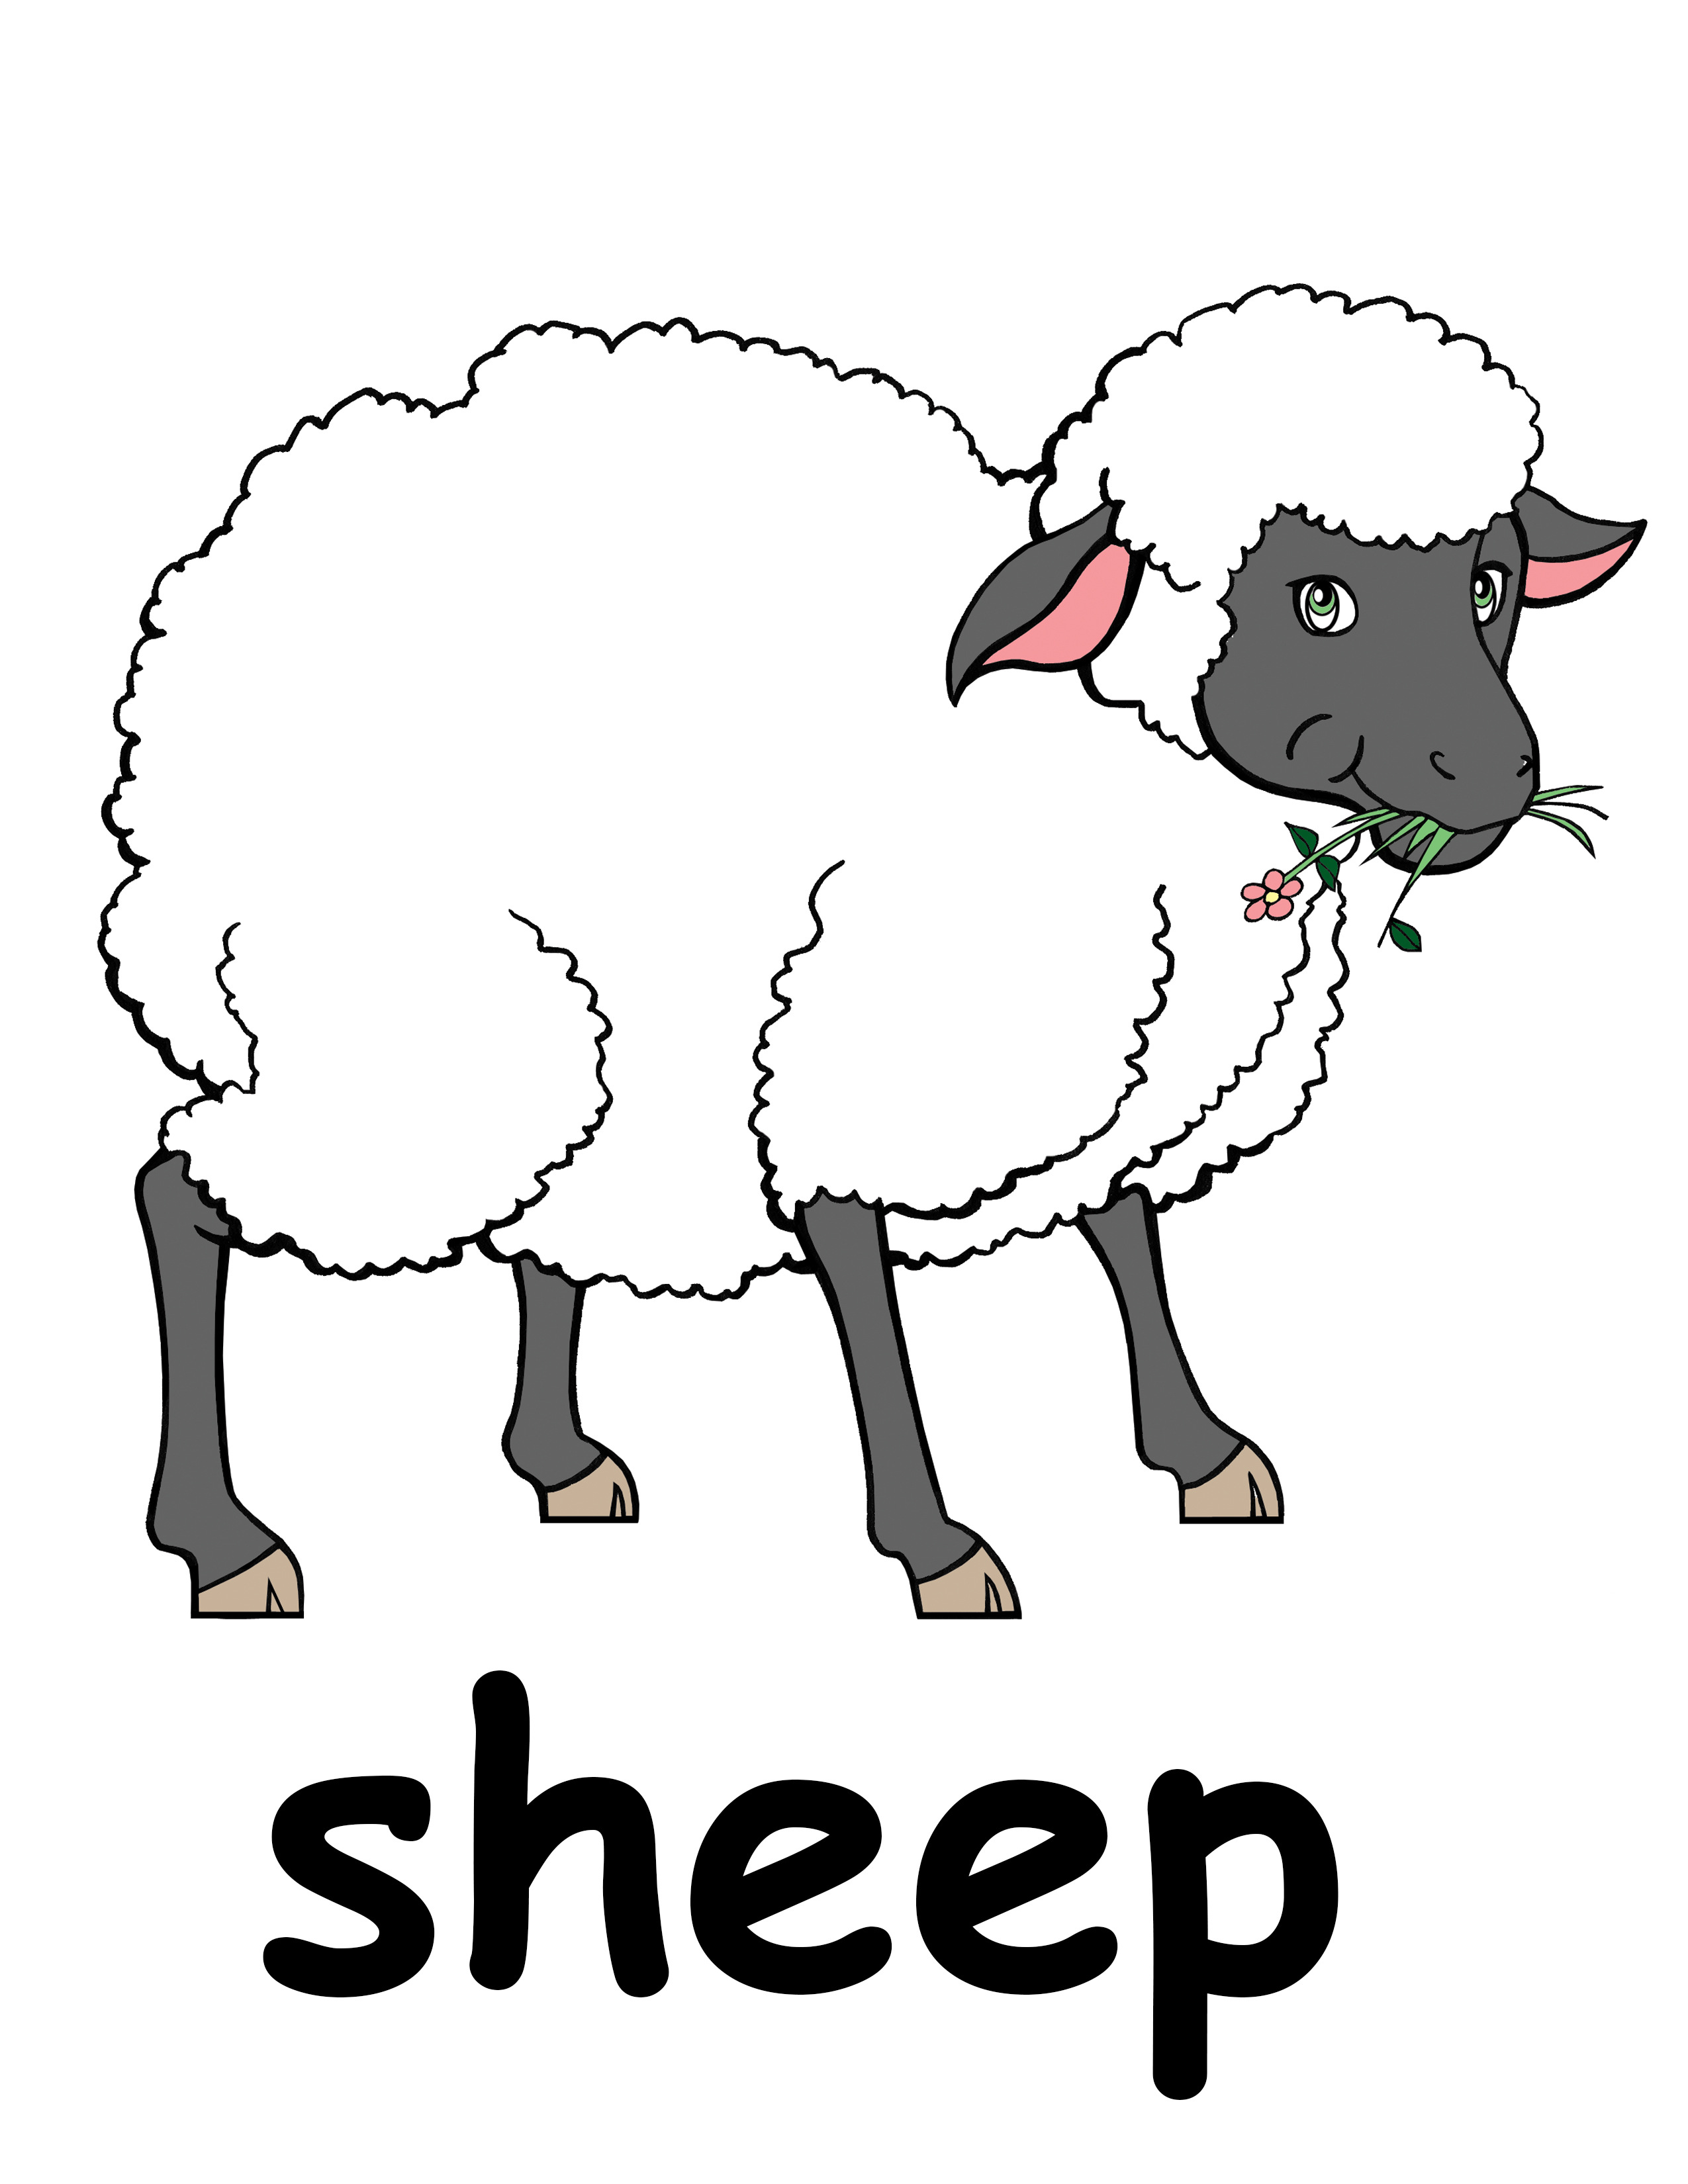 Sheep clipart for kid #3